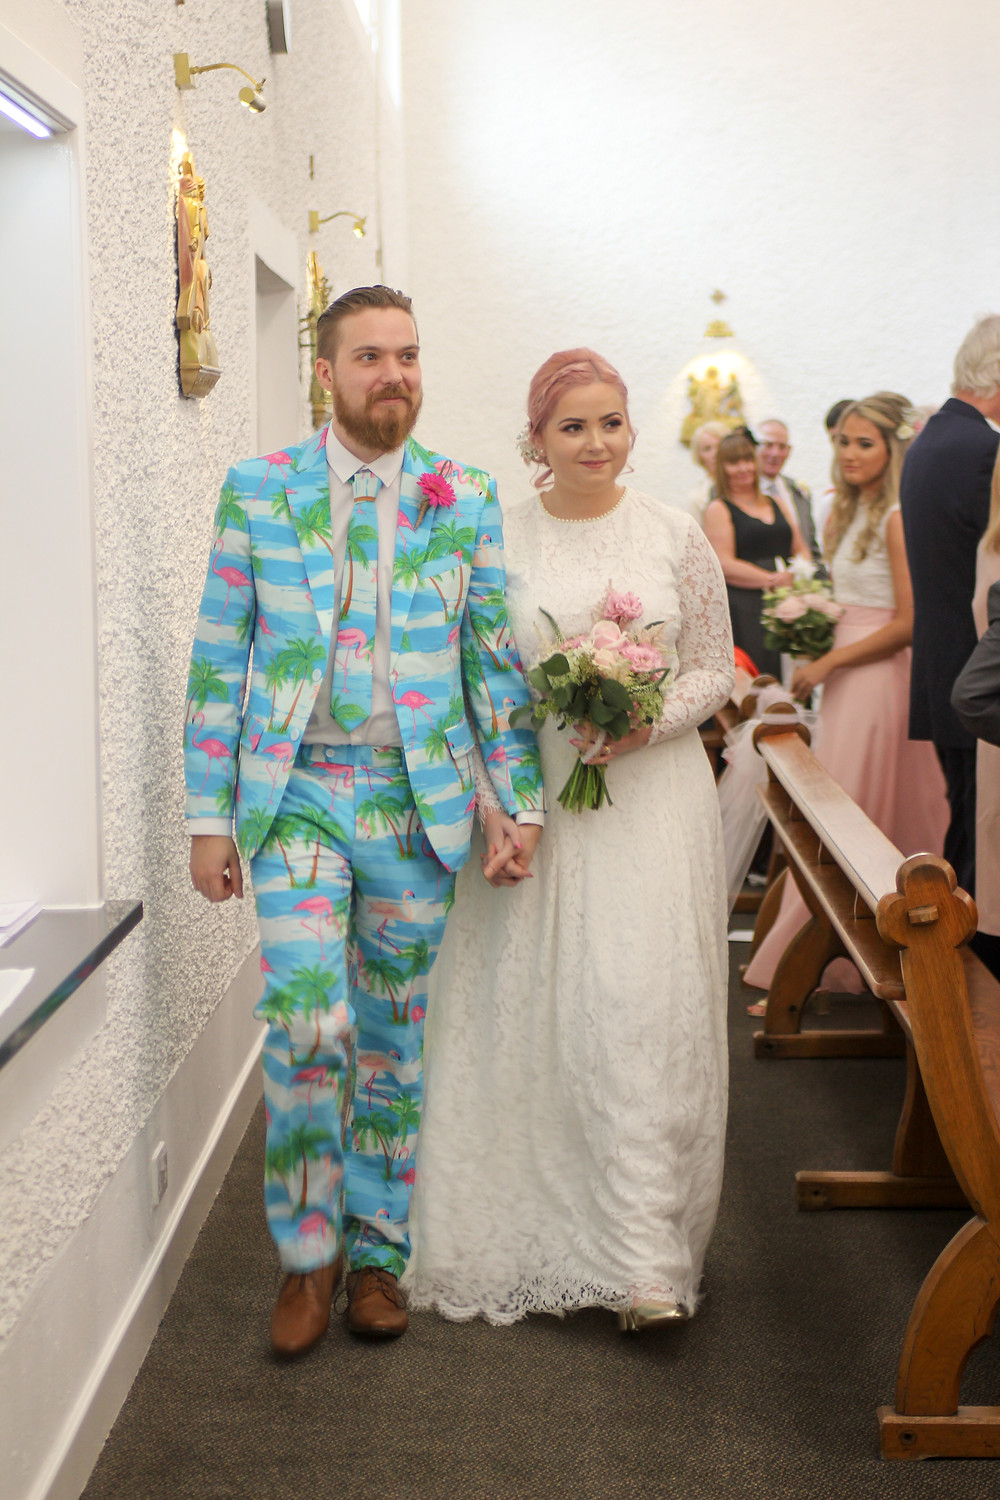 Bride and groom are at the back of a church, the groom is wearing a white and turquoise suit with pink flamingos, the bride is wearing a white lace dress with long hair and has pink hair tied back